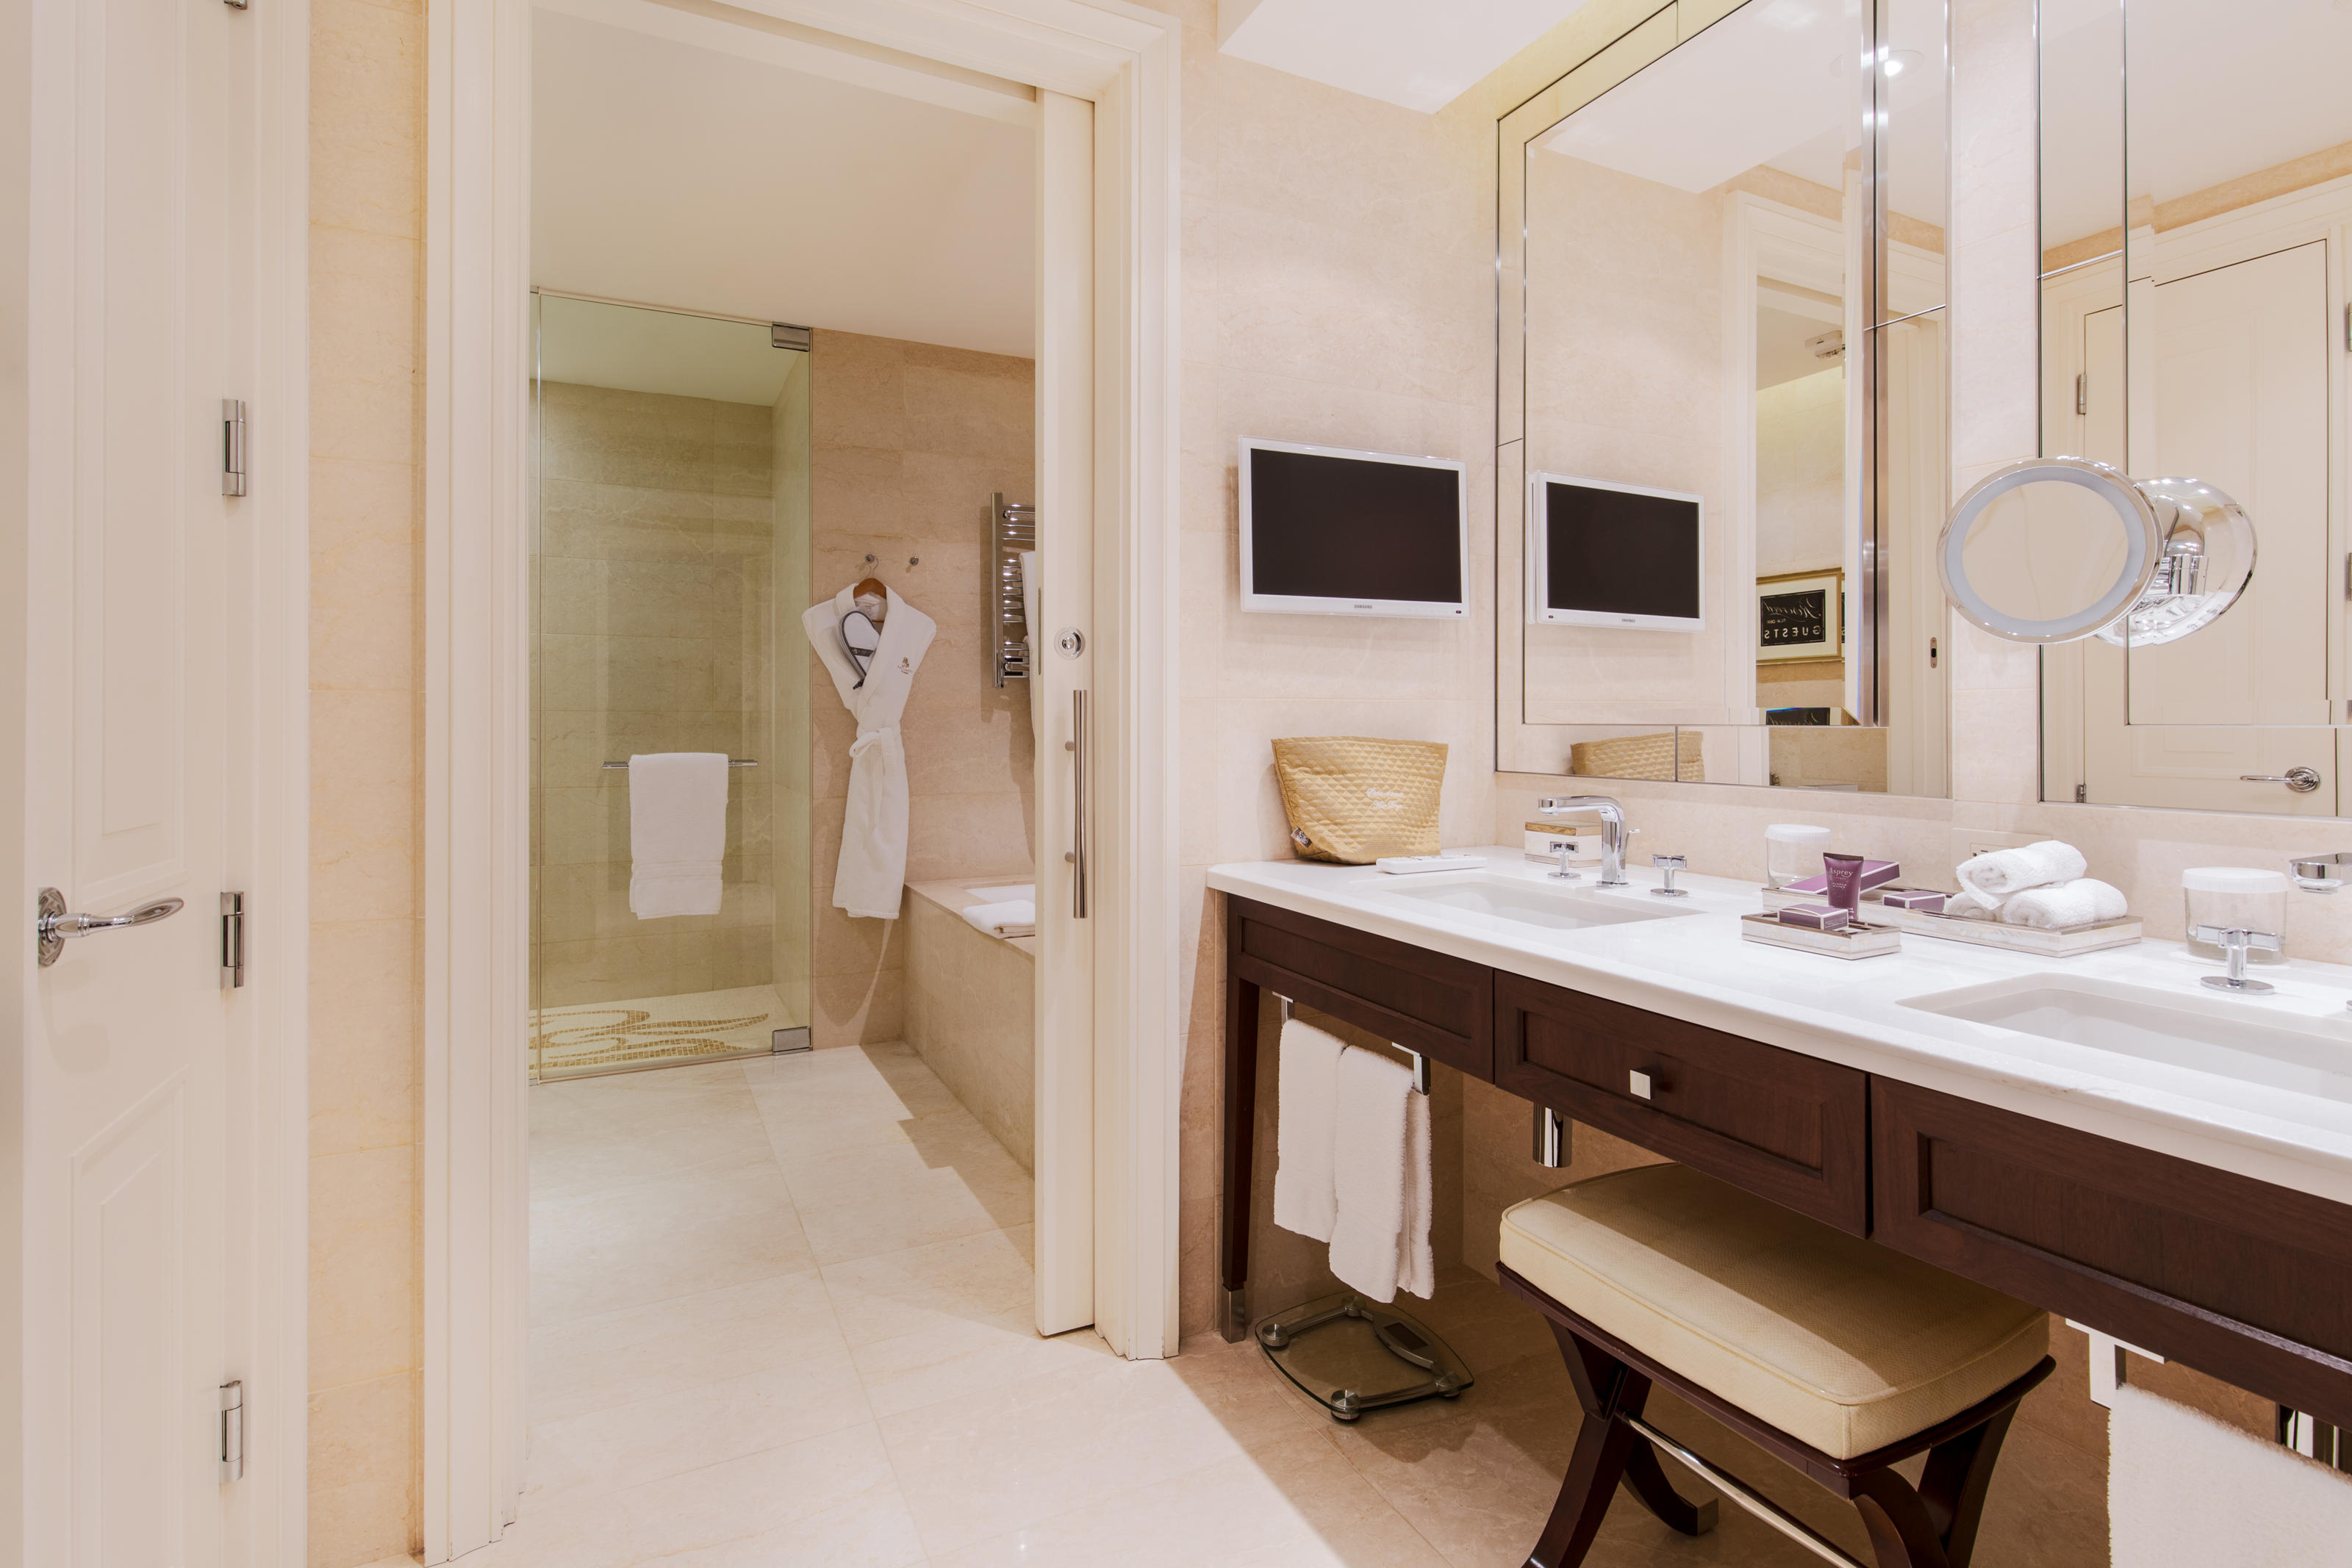 The Ritz-Carlton, Montreal à Montreal: Marble bathroom     Heated floors     Oversized soaking tubs     Rainforest shower heads and separate bath     Toto toilet with heated seat